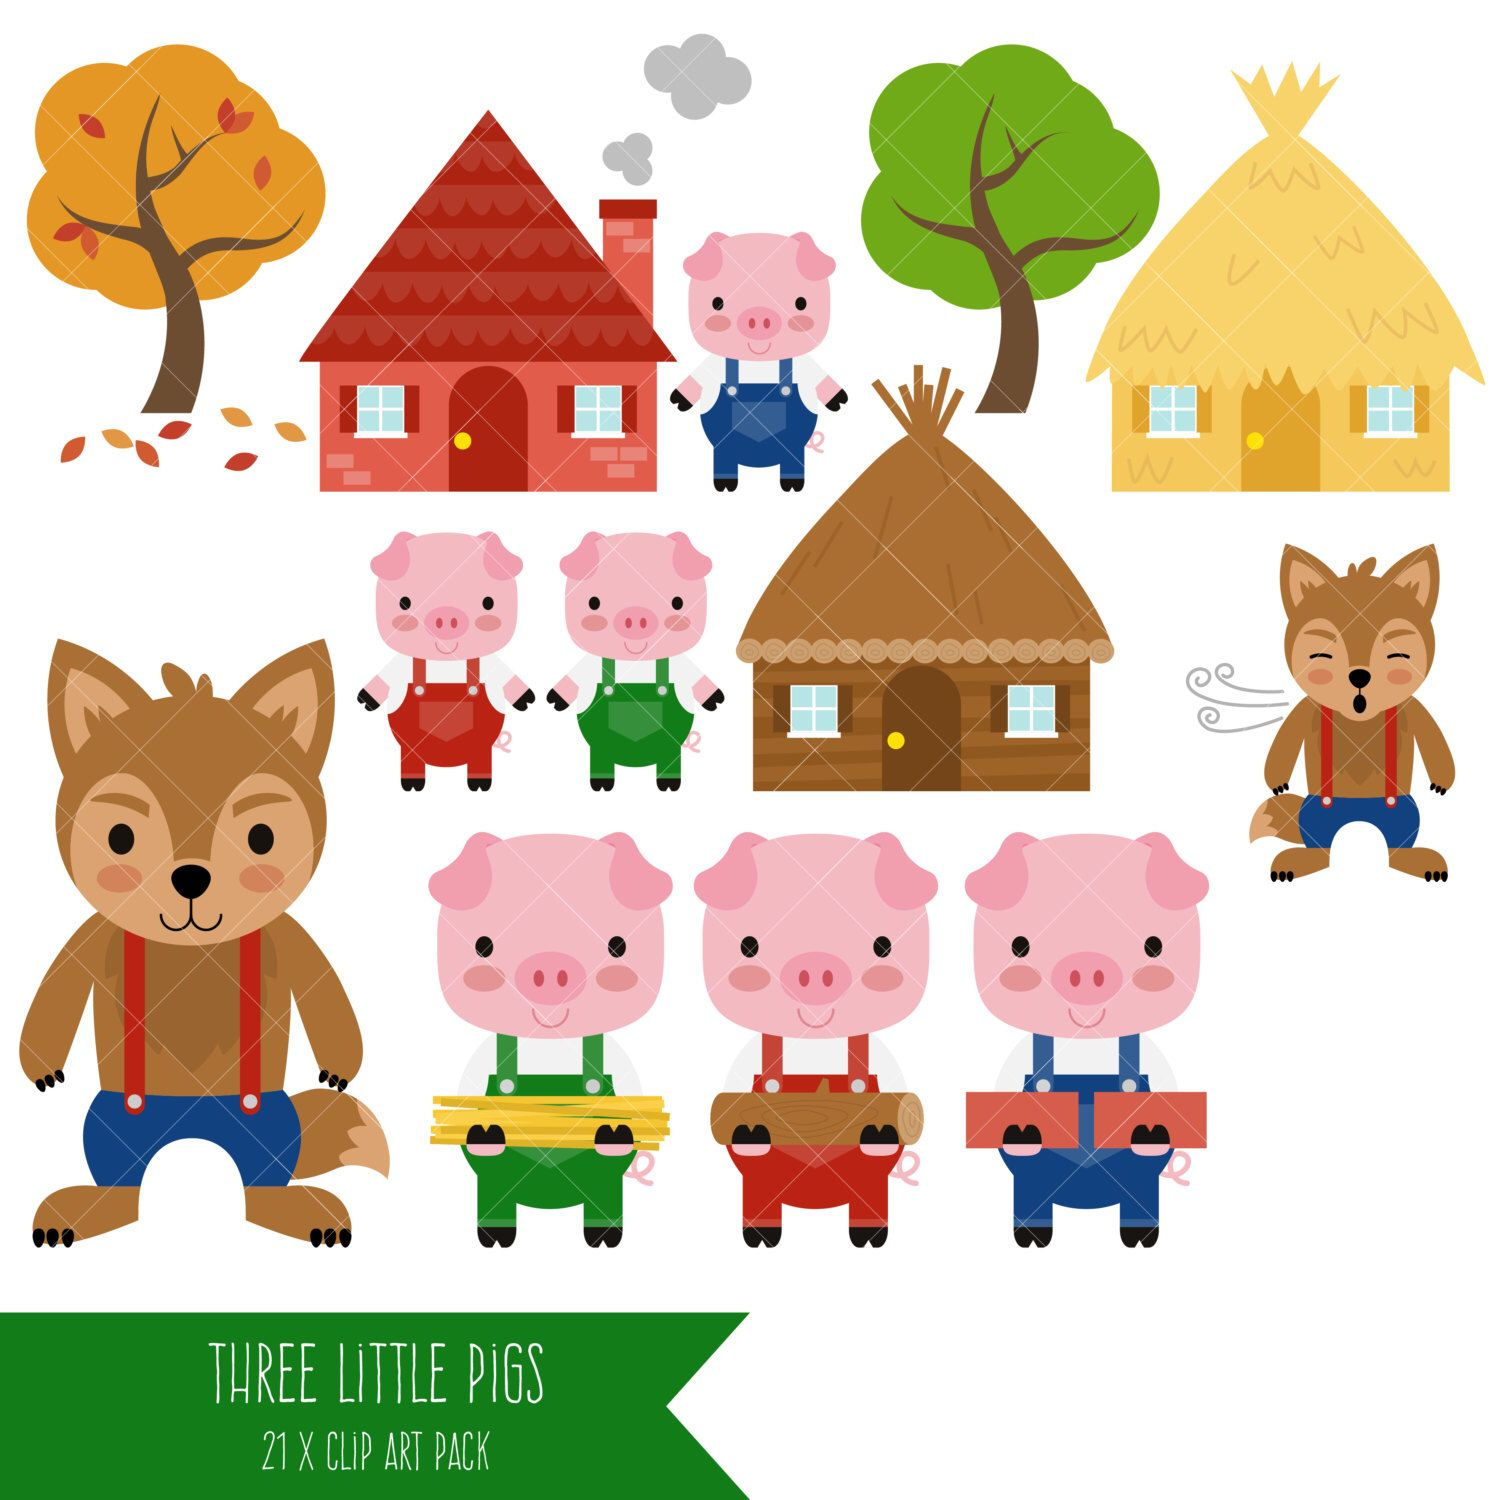 Three Little Pigs Clipart / Big Bad Wolf Clip Art.